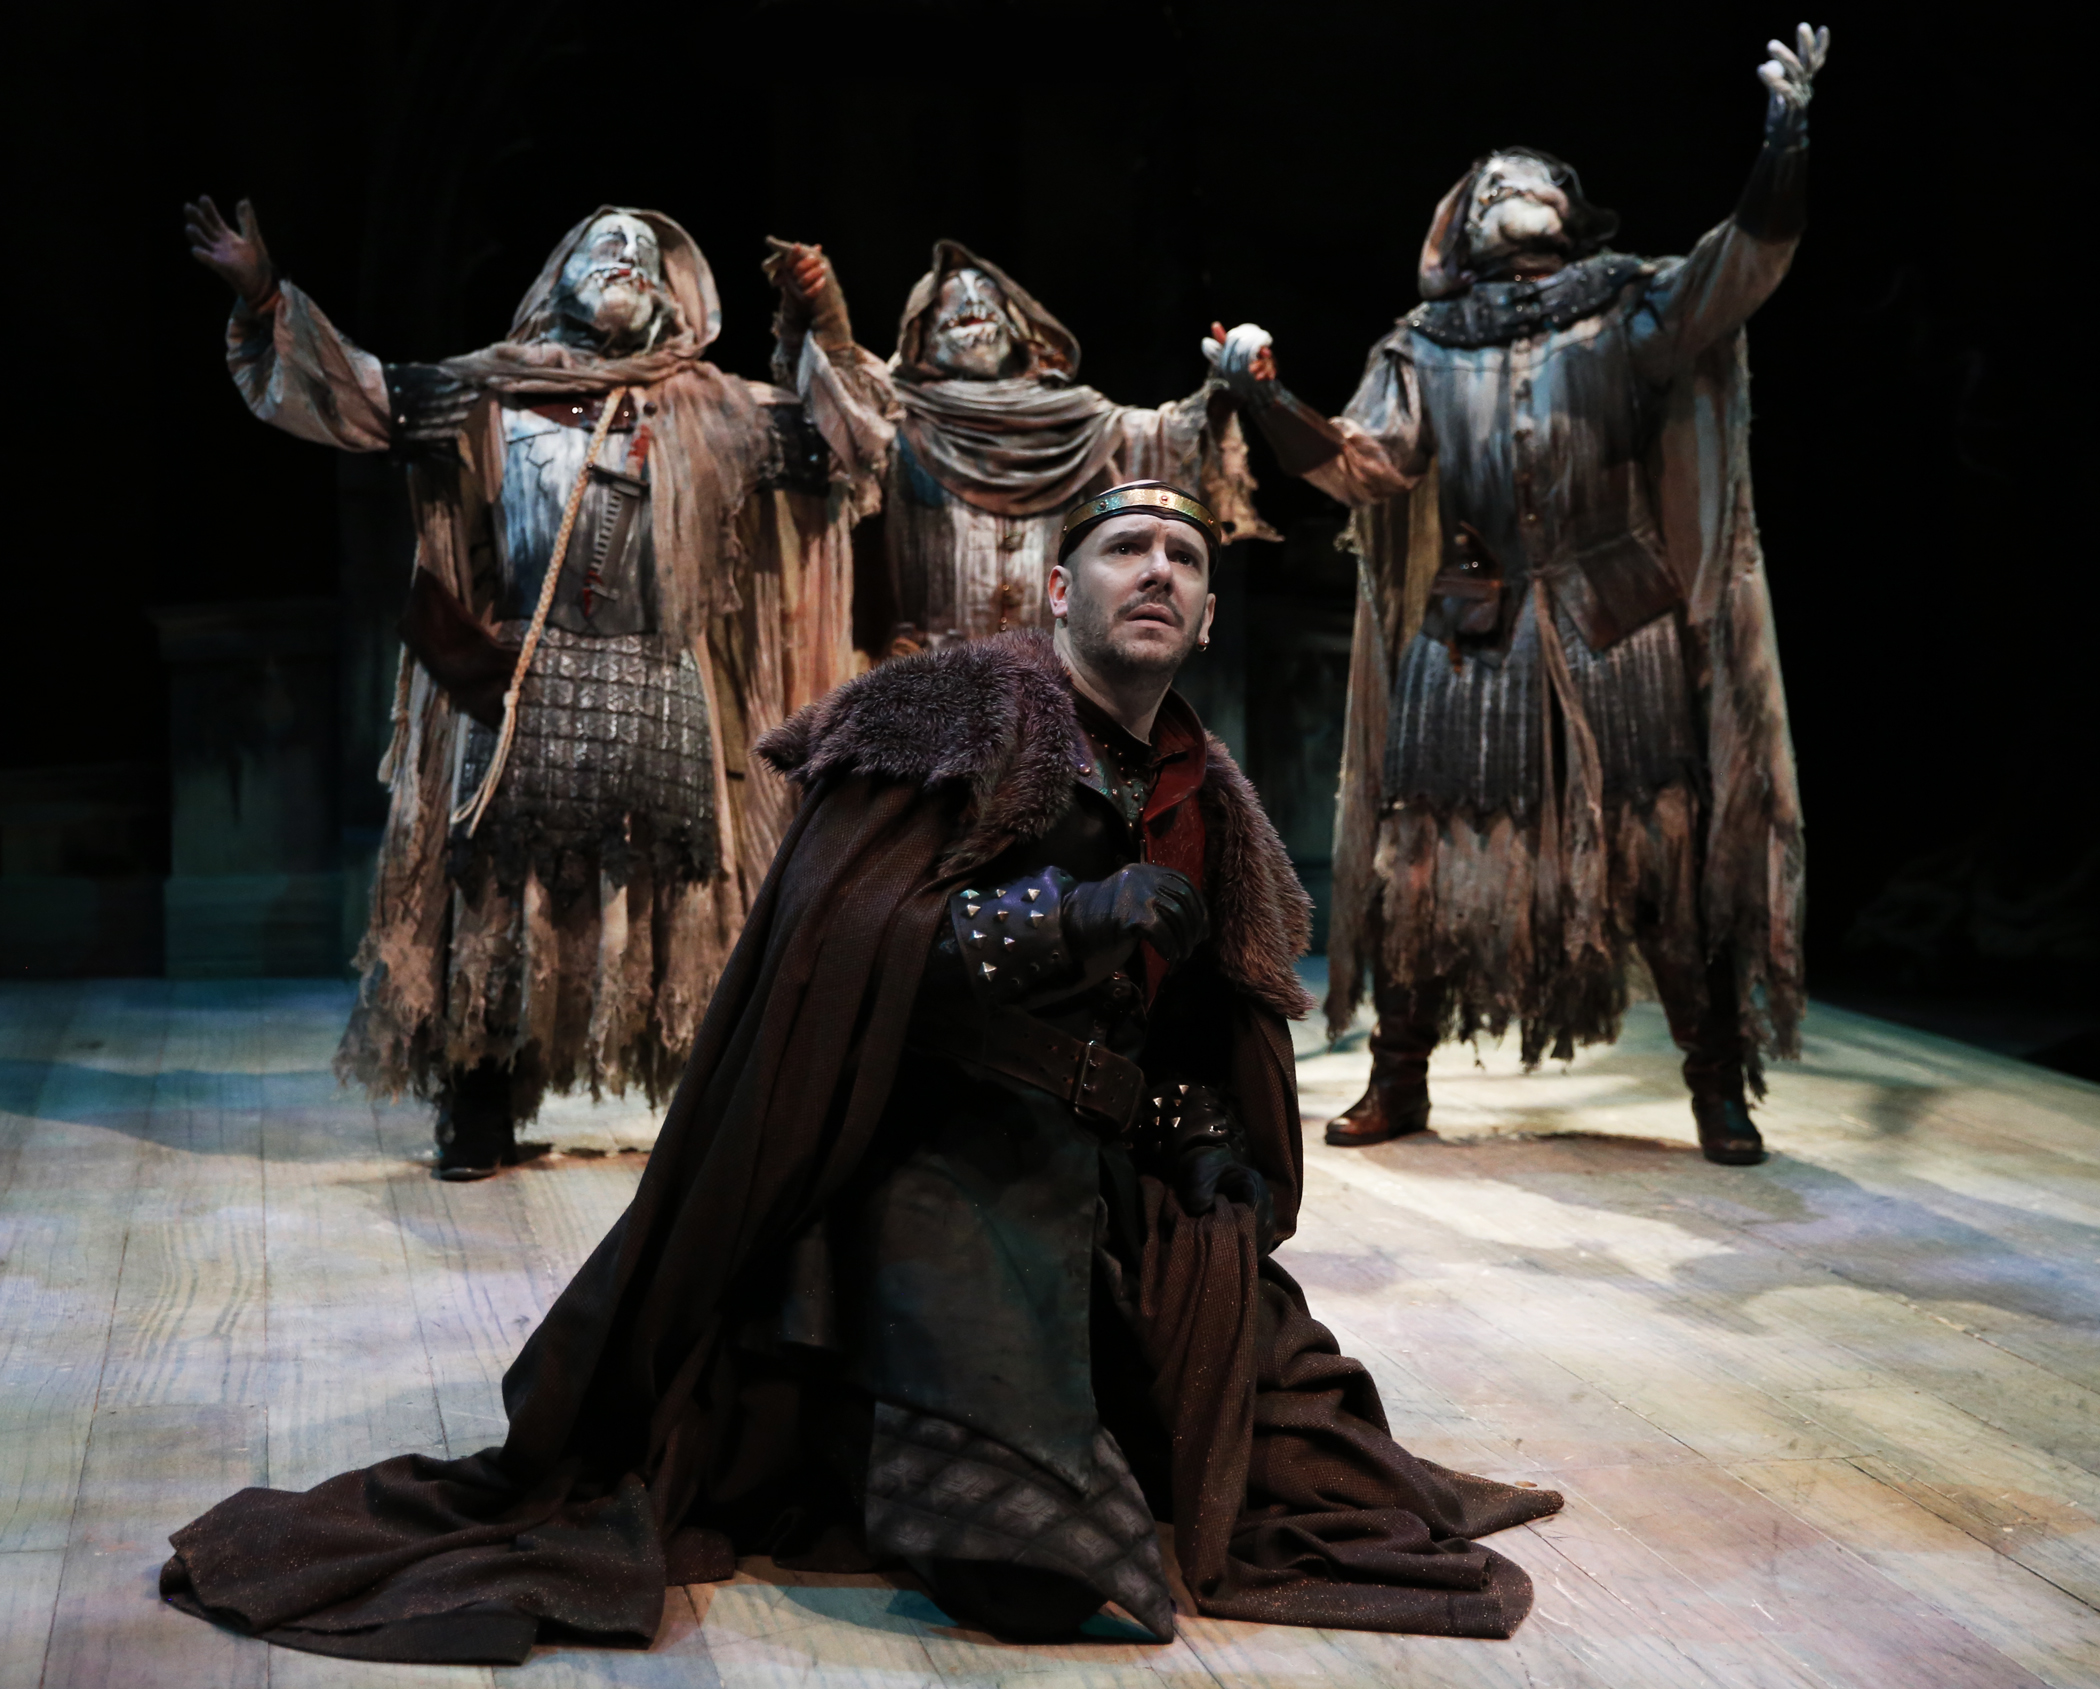 Shakespeare, Macbeth, Greed and Power